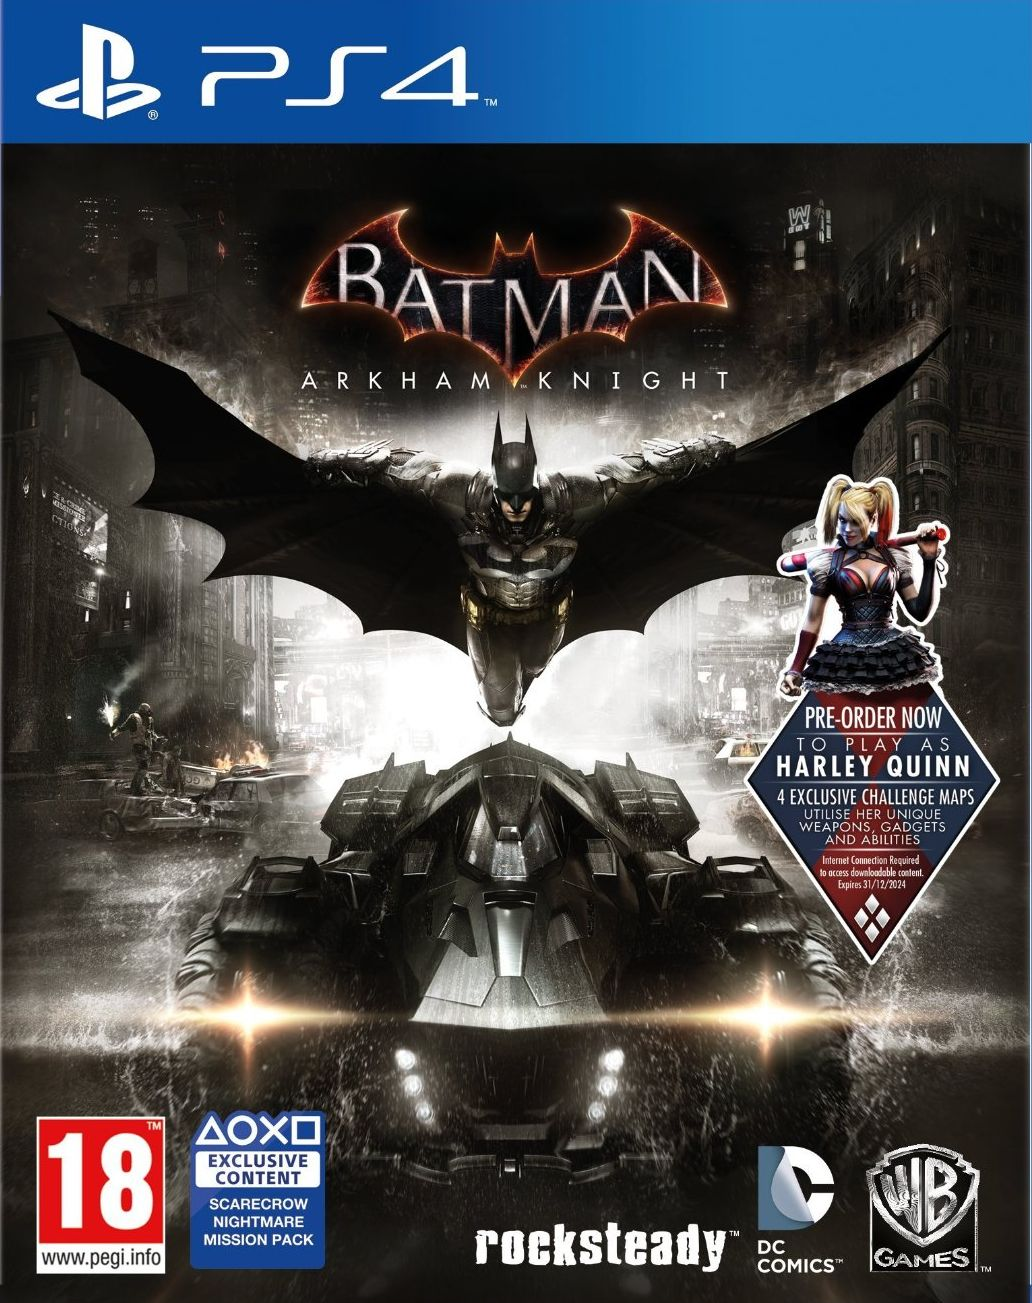 The shadow of the bat is still upon the UK charts